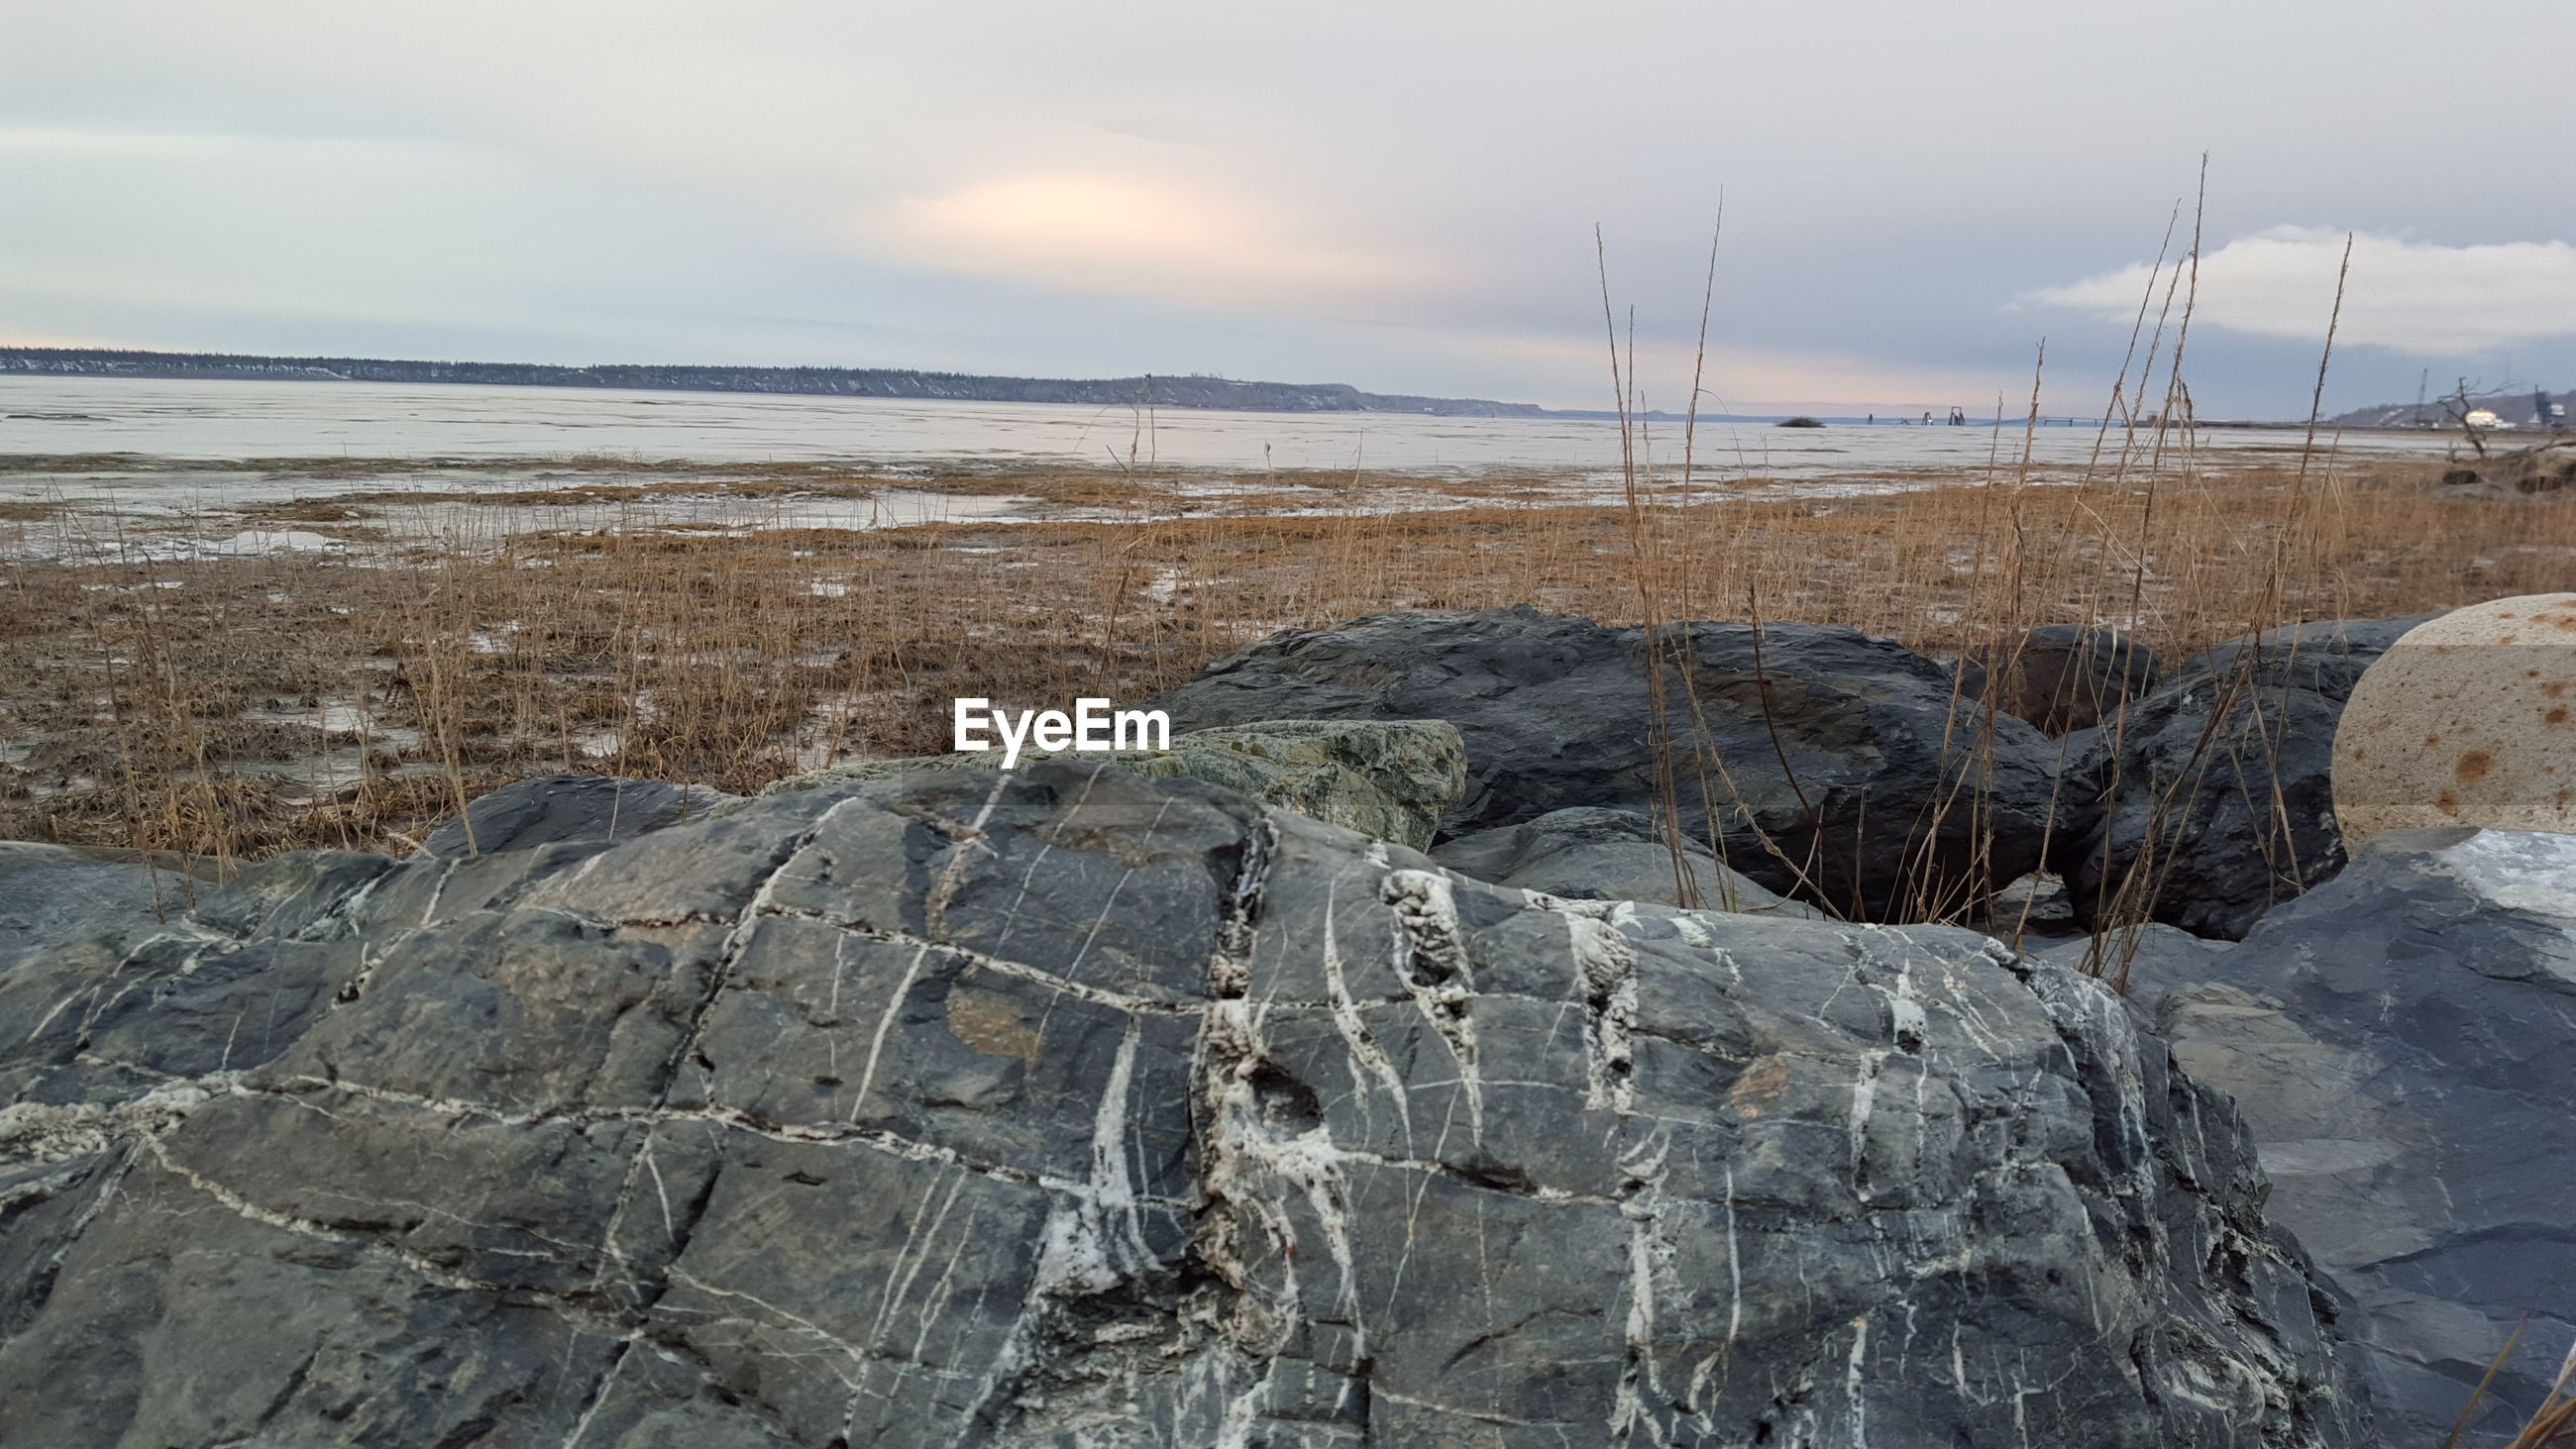 Rocks at beach against sky during winter